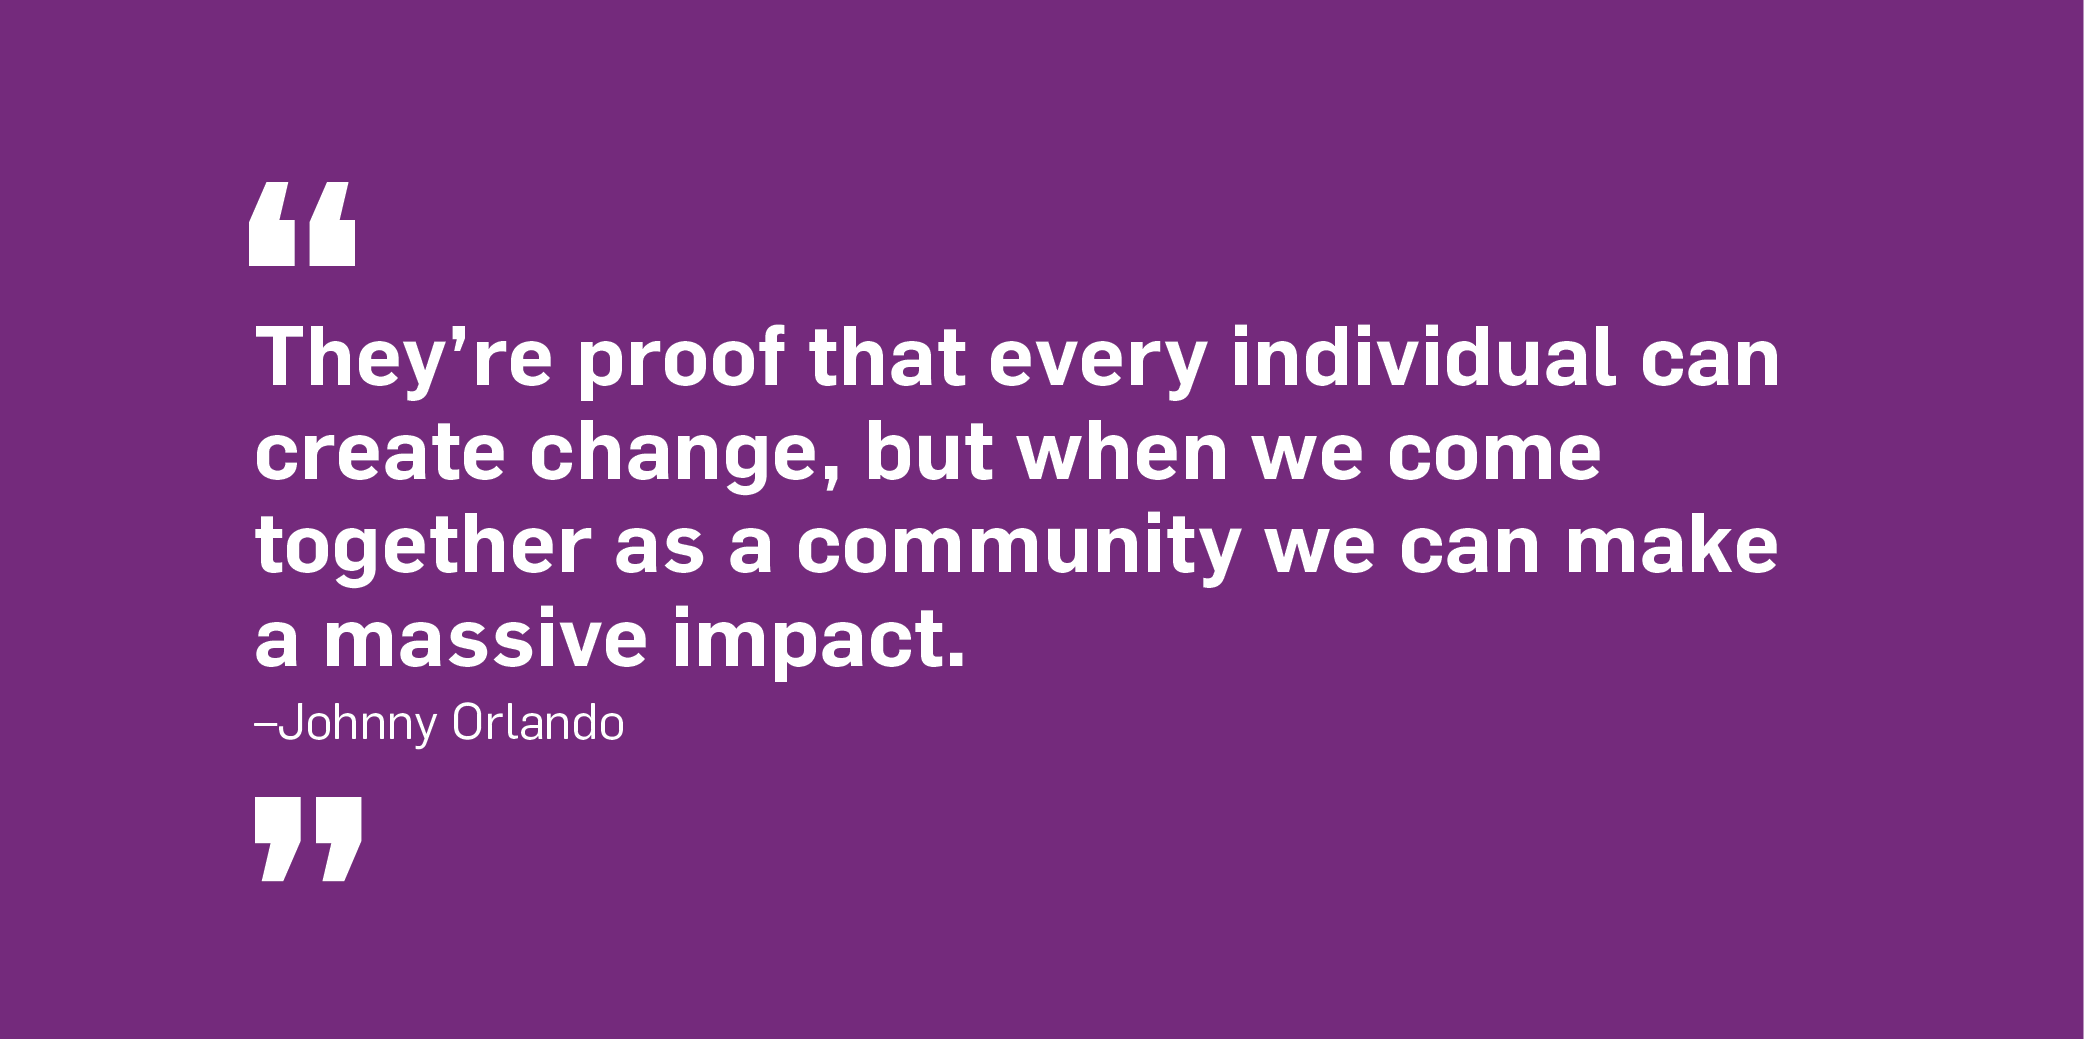 Quote. They're proof that every individual can create change, but when we come together as a community we can make a massive impact. Unquote. Johnny Orlando.